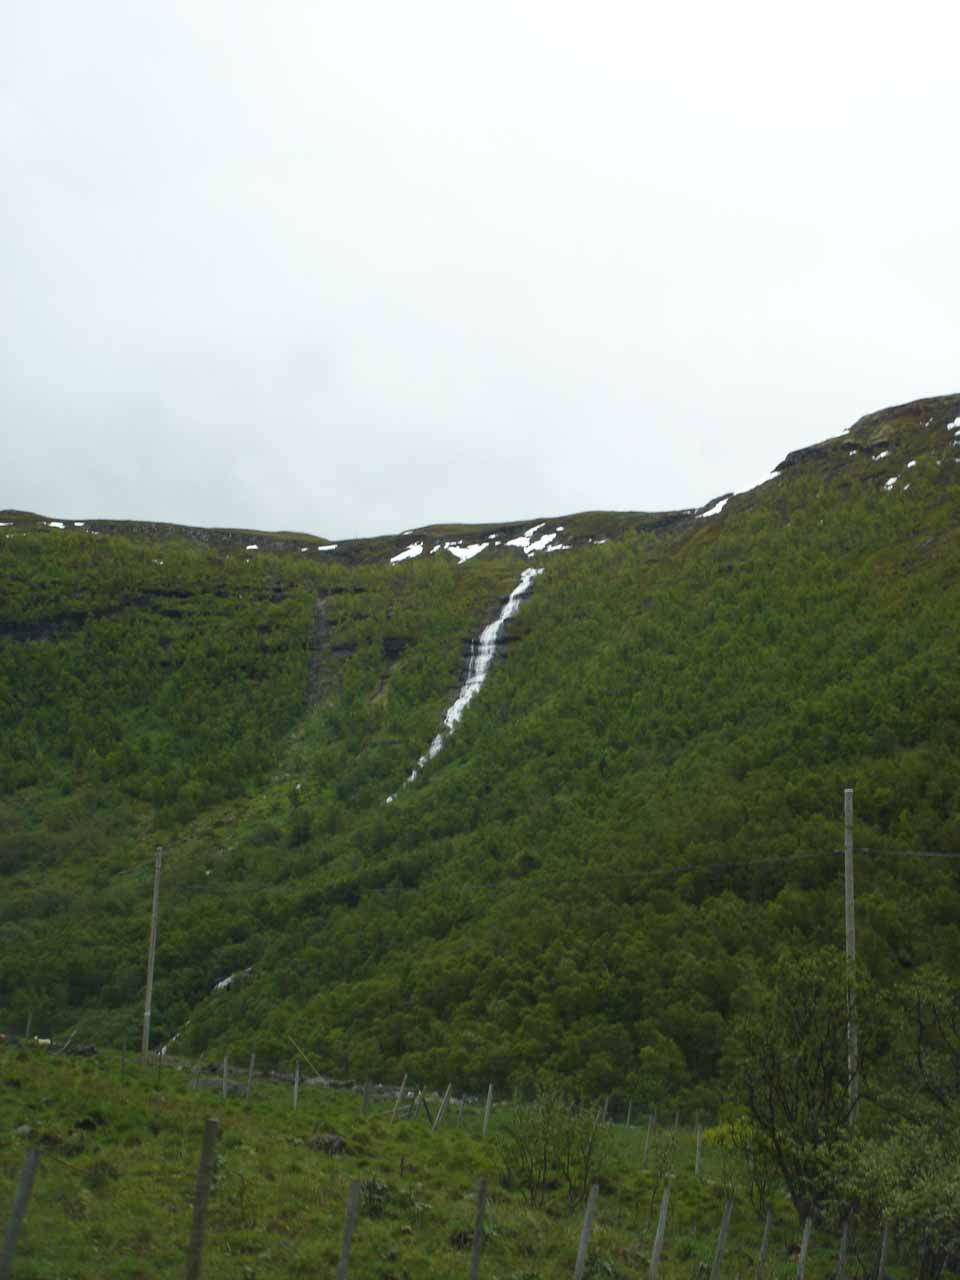 Angled view of some waterfall as we made our way towards Skjolden from Turtagrø